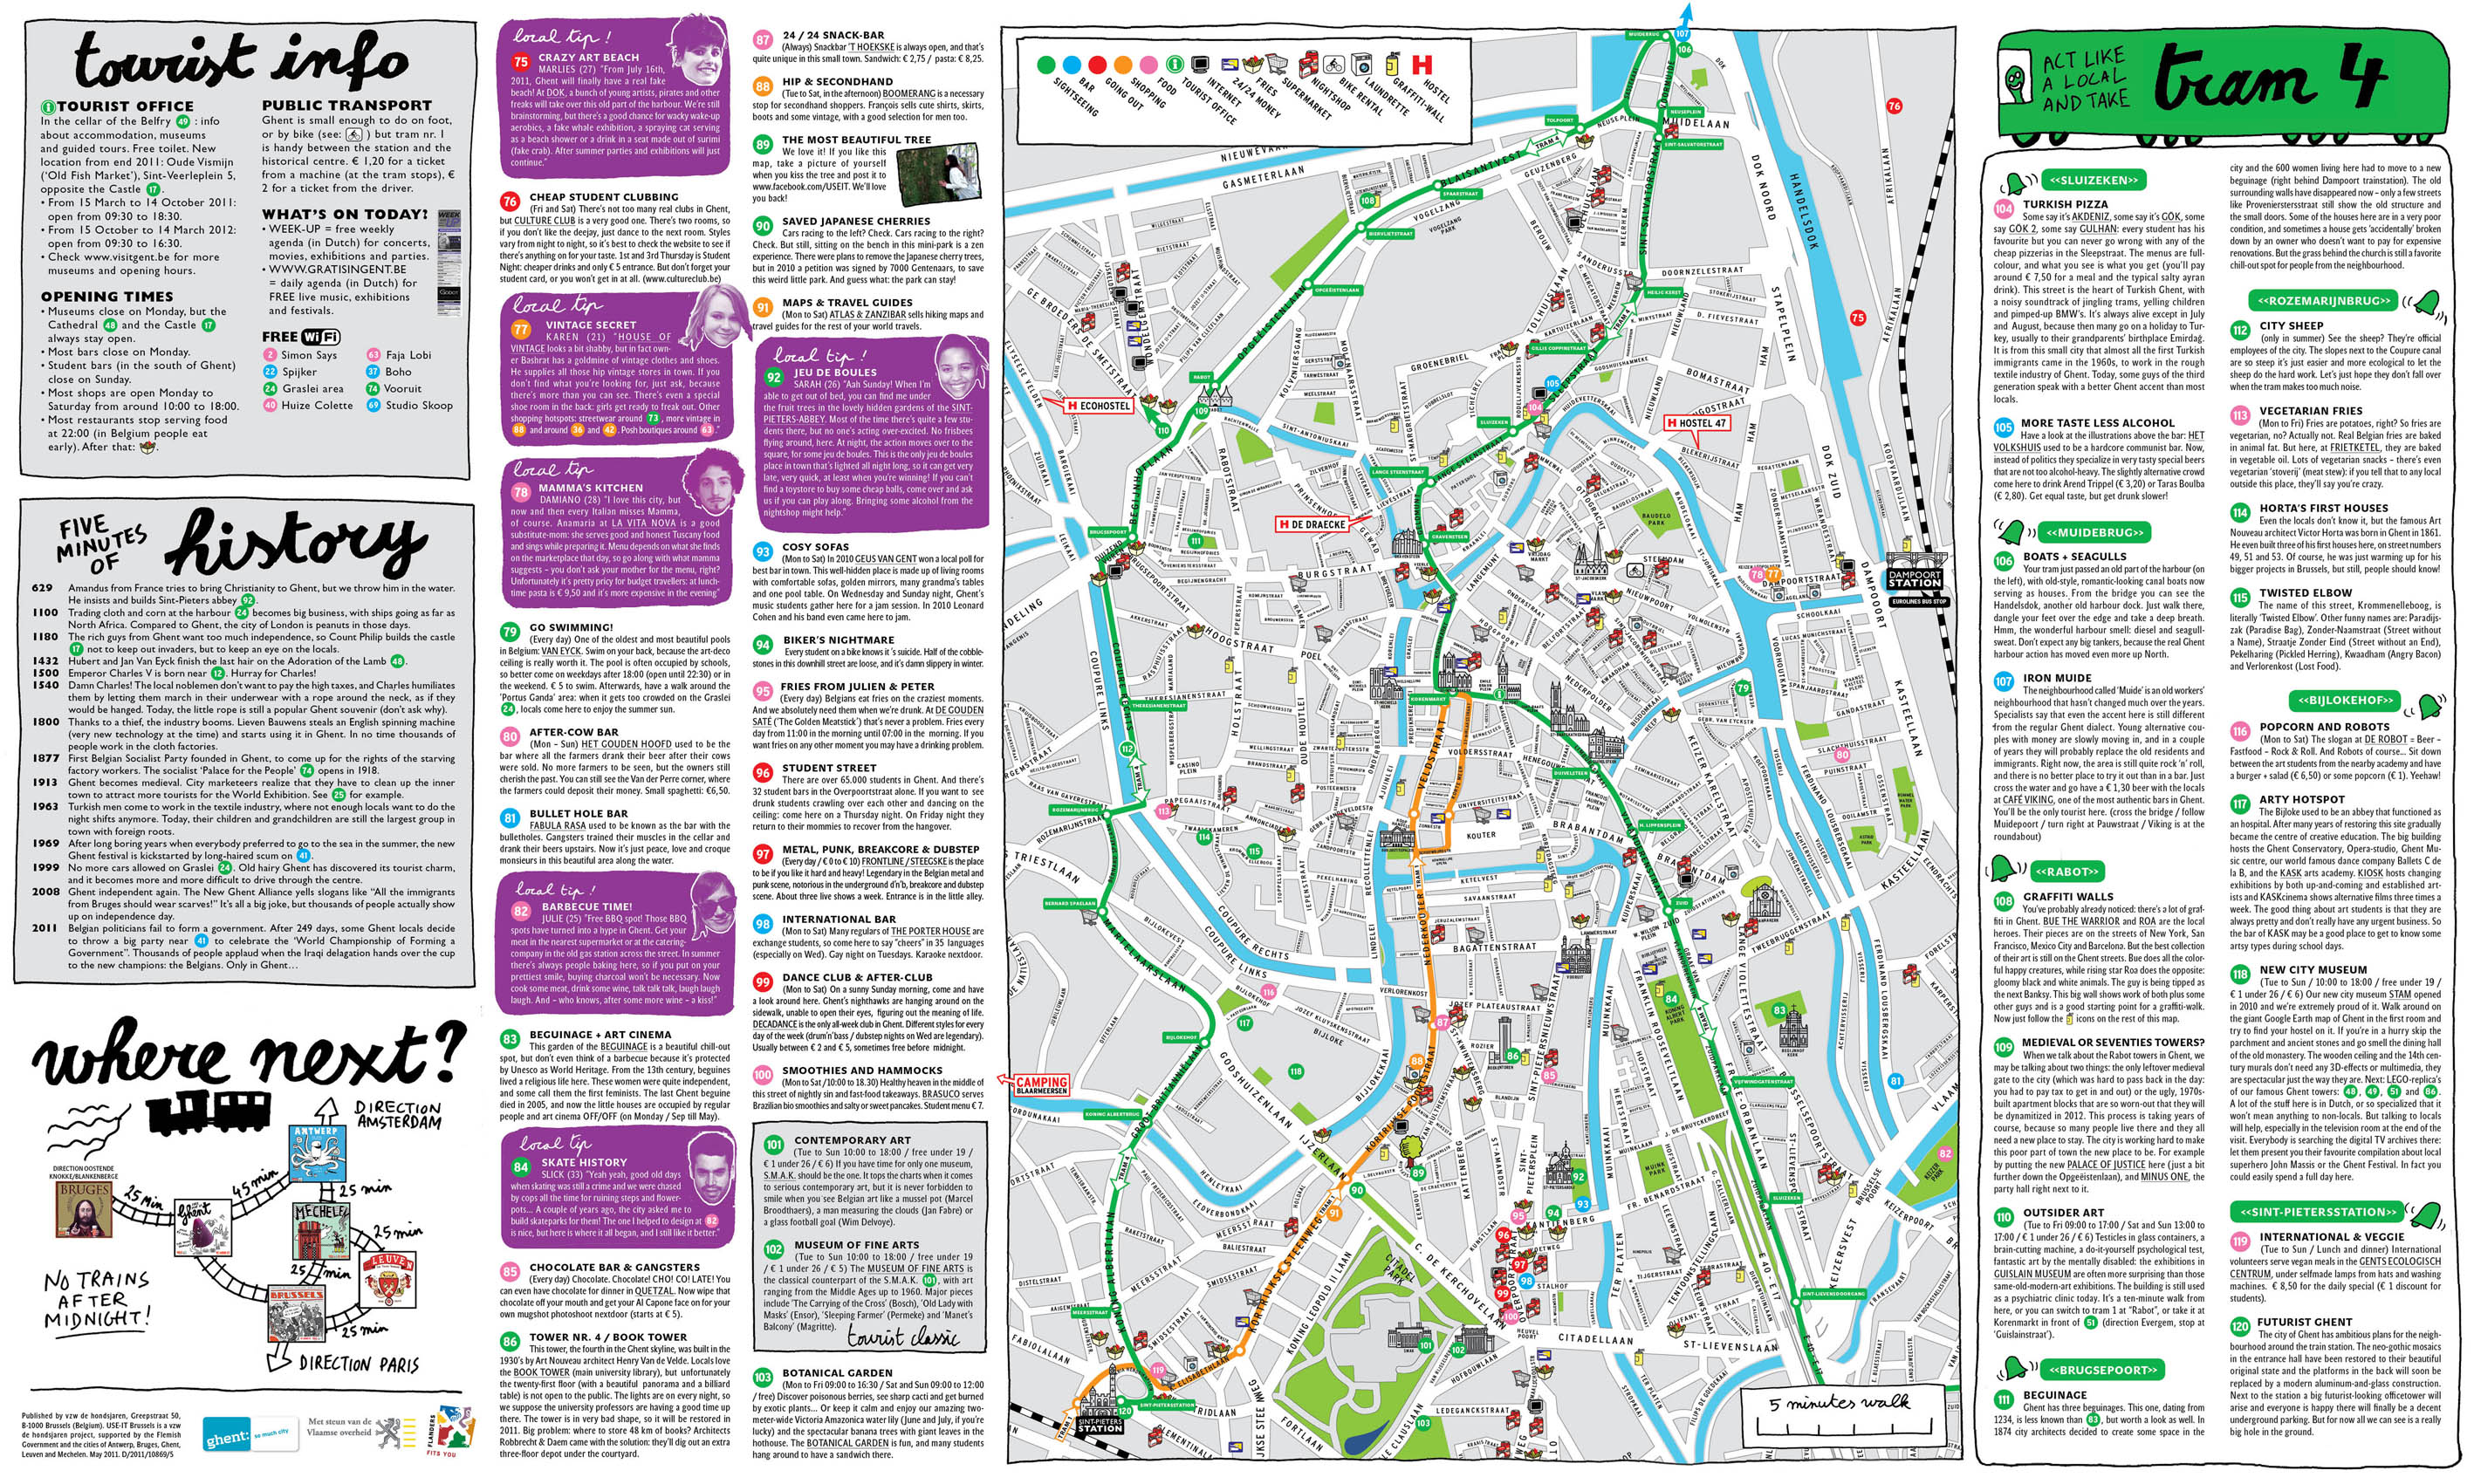 MAP Ghent USEIT TOURIST INFO FOR YOUNG PEOPLE